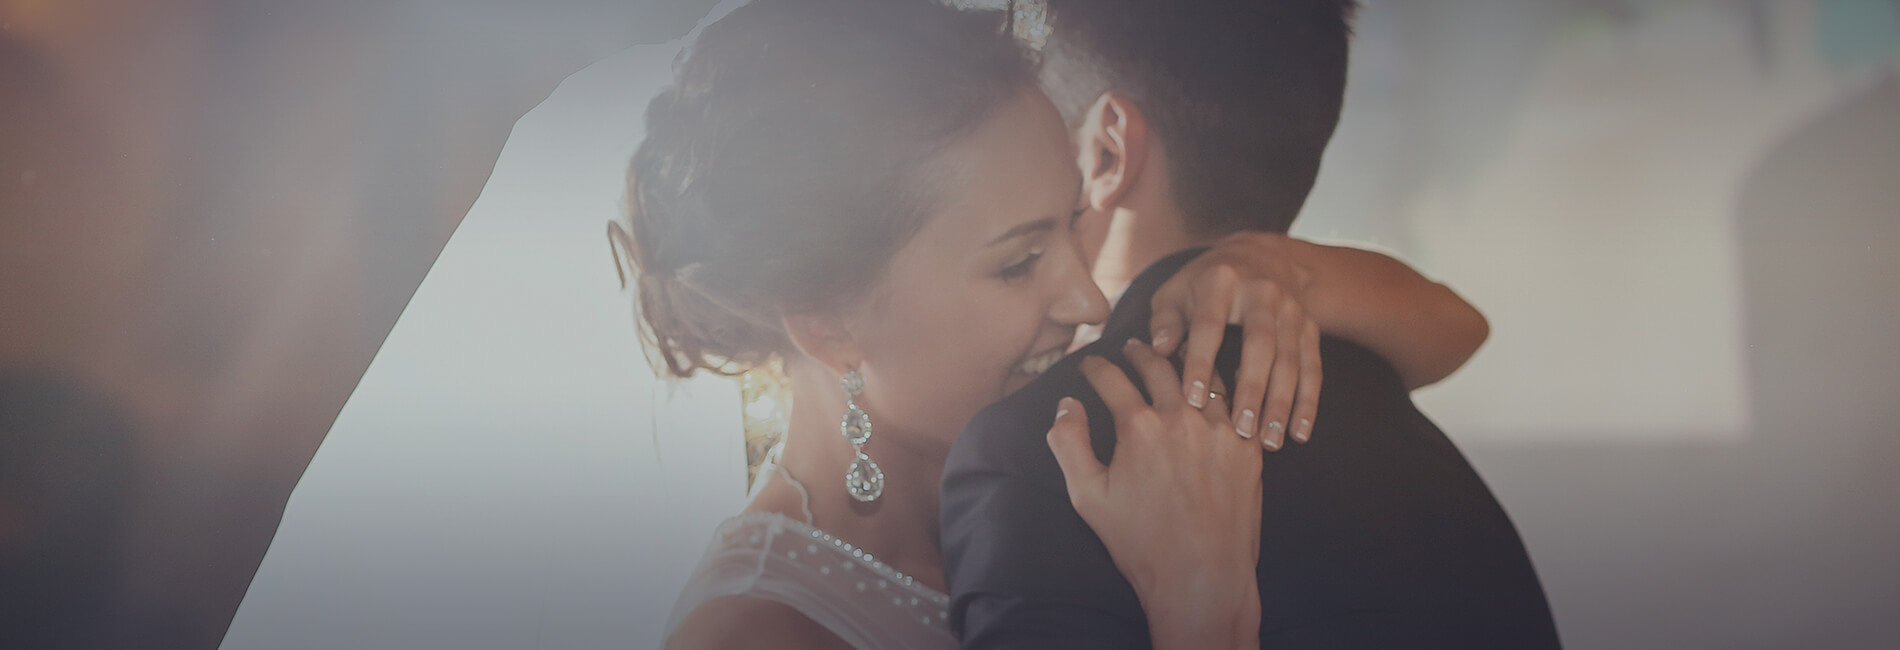 wedding lp 1900x650